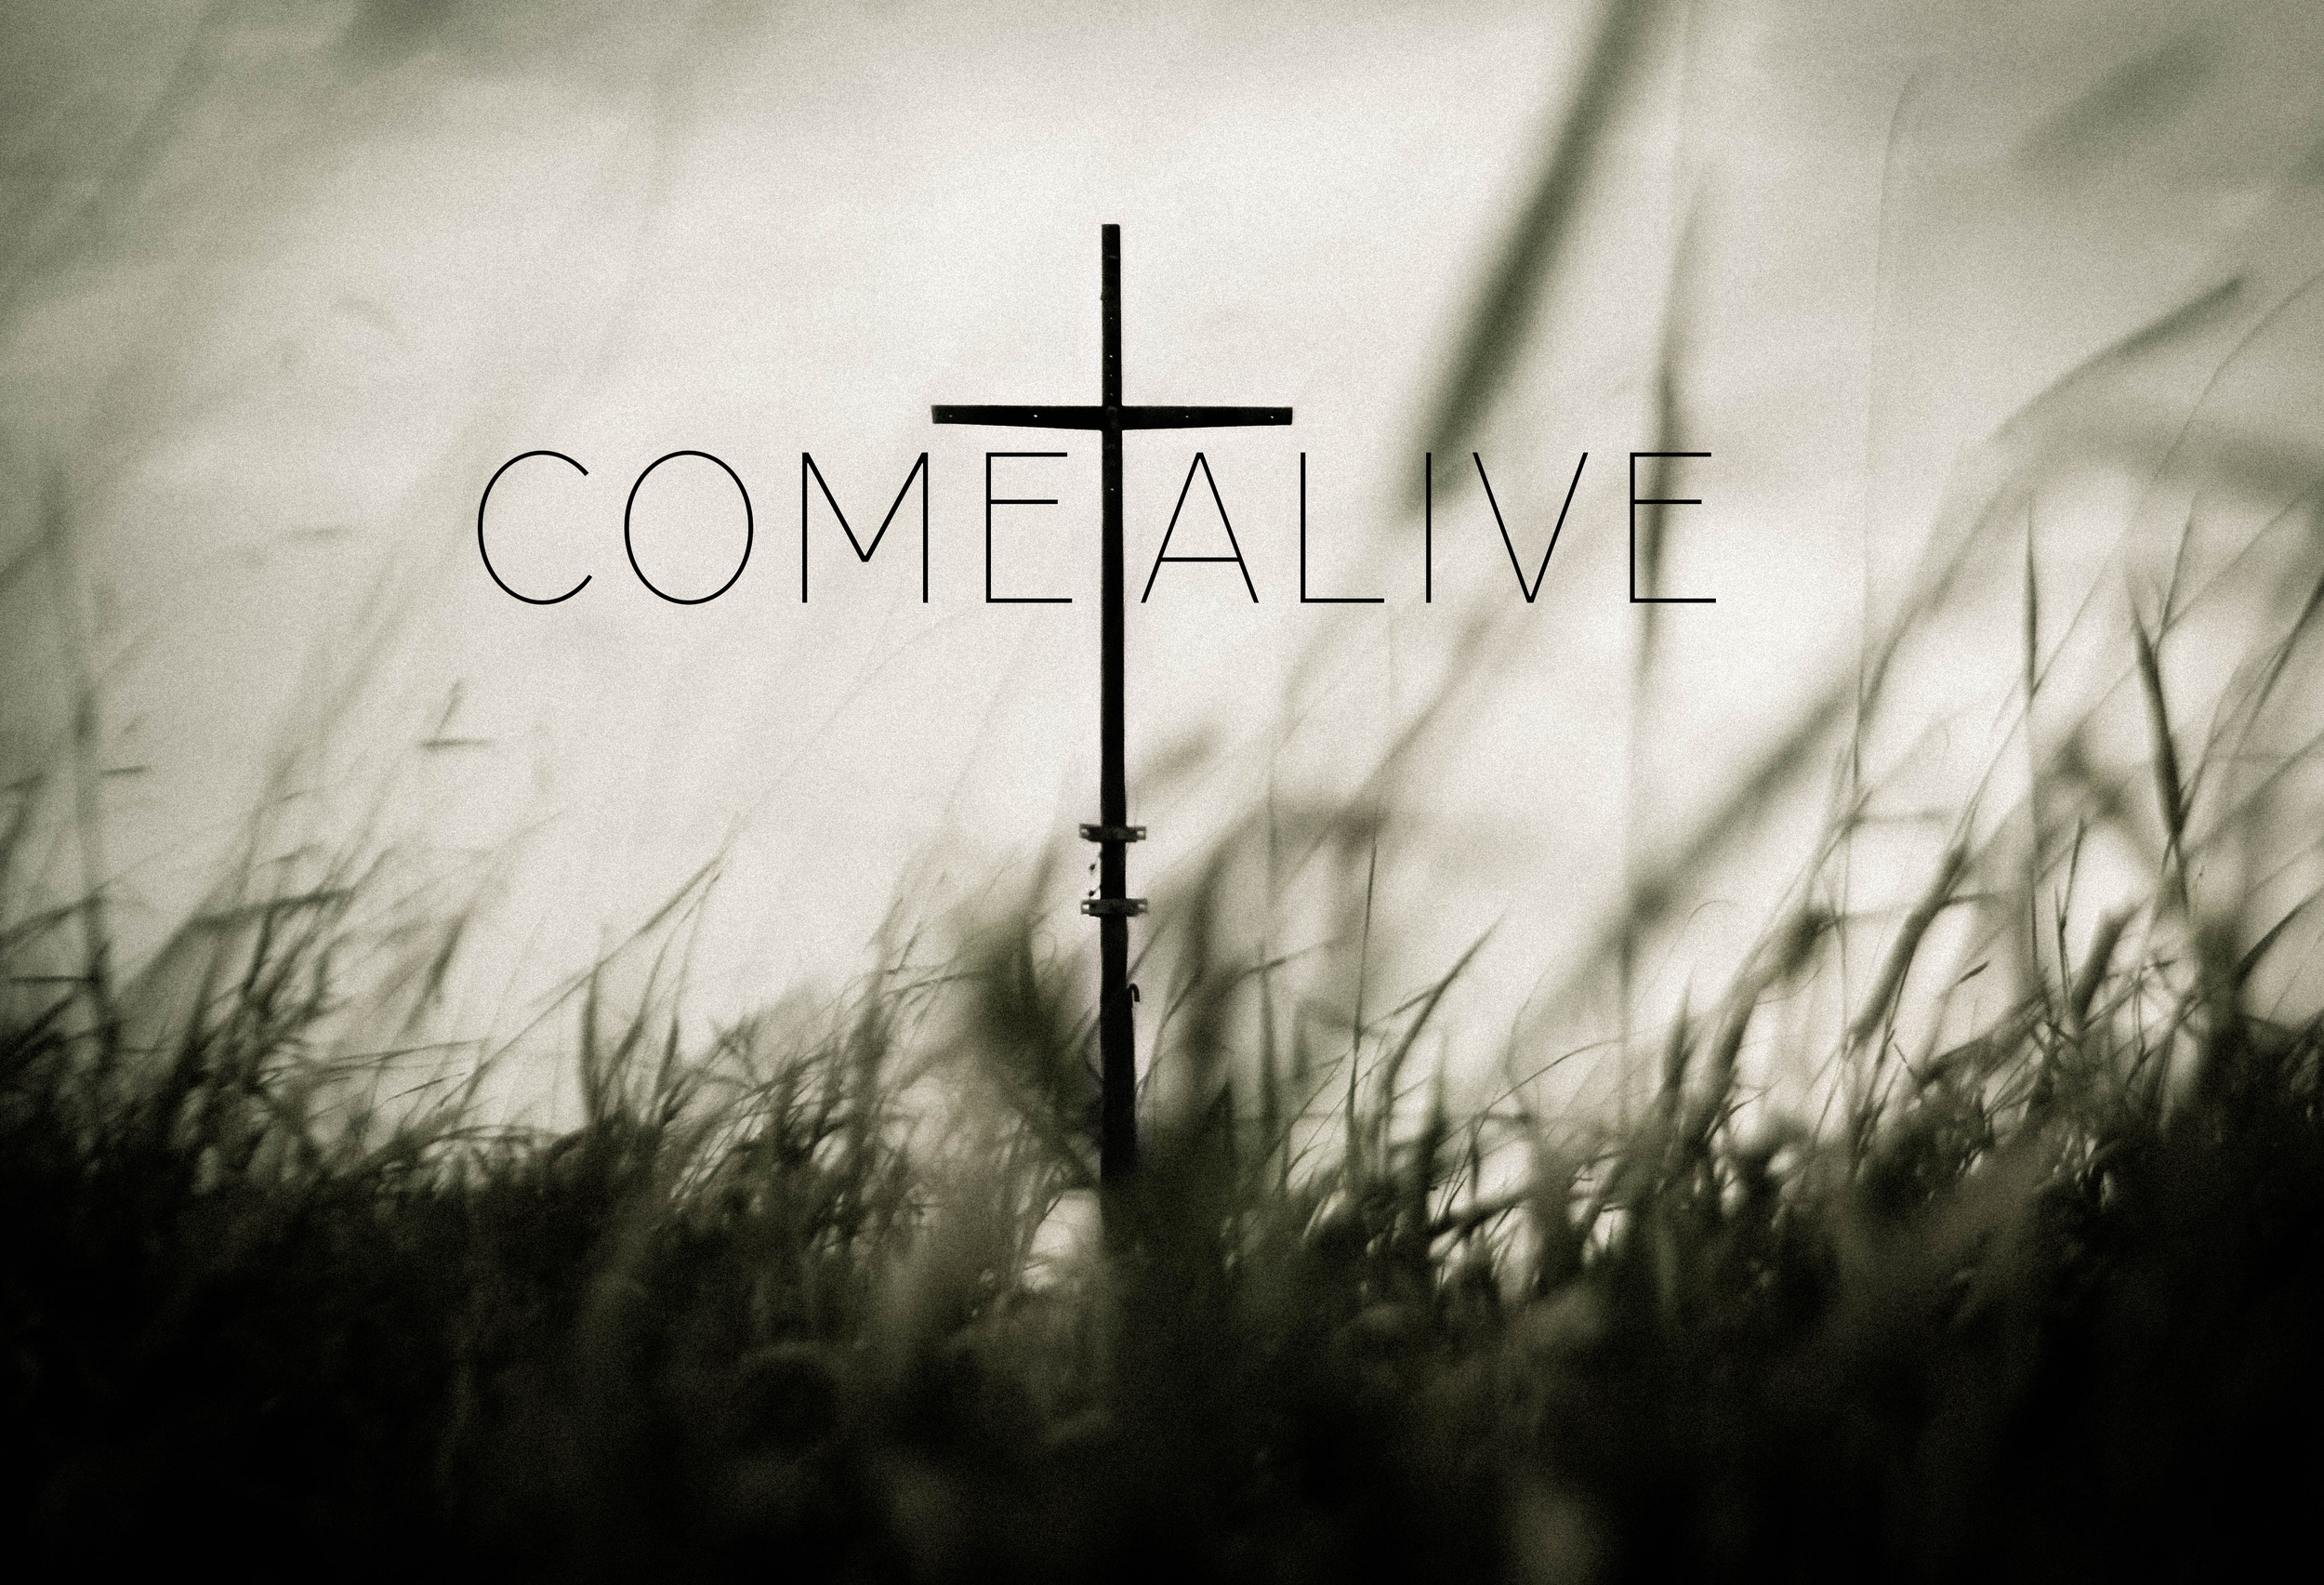 Come Alive- April 2, 2017